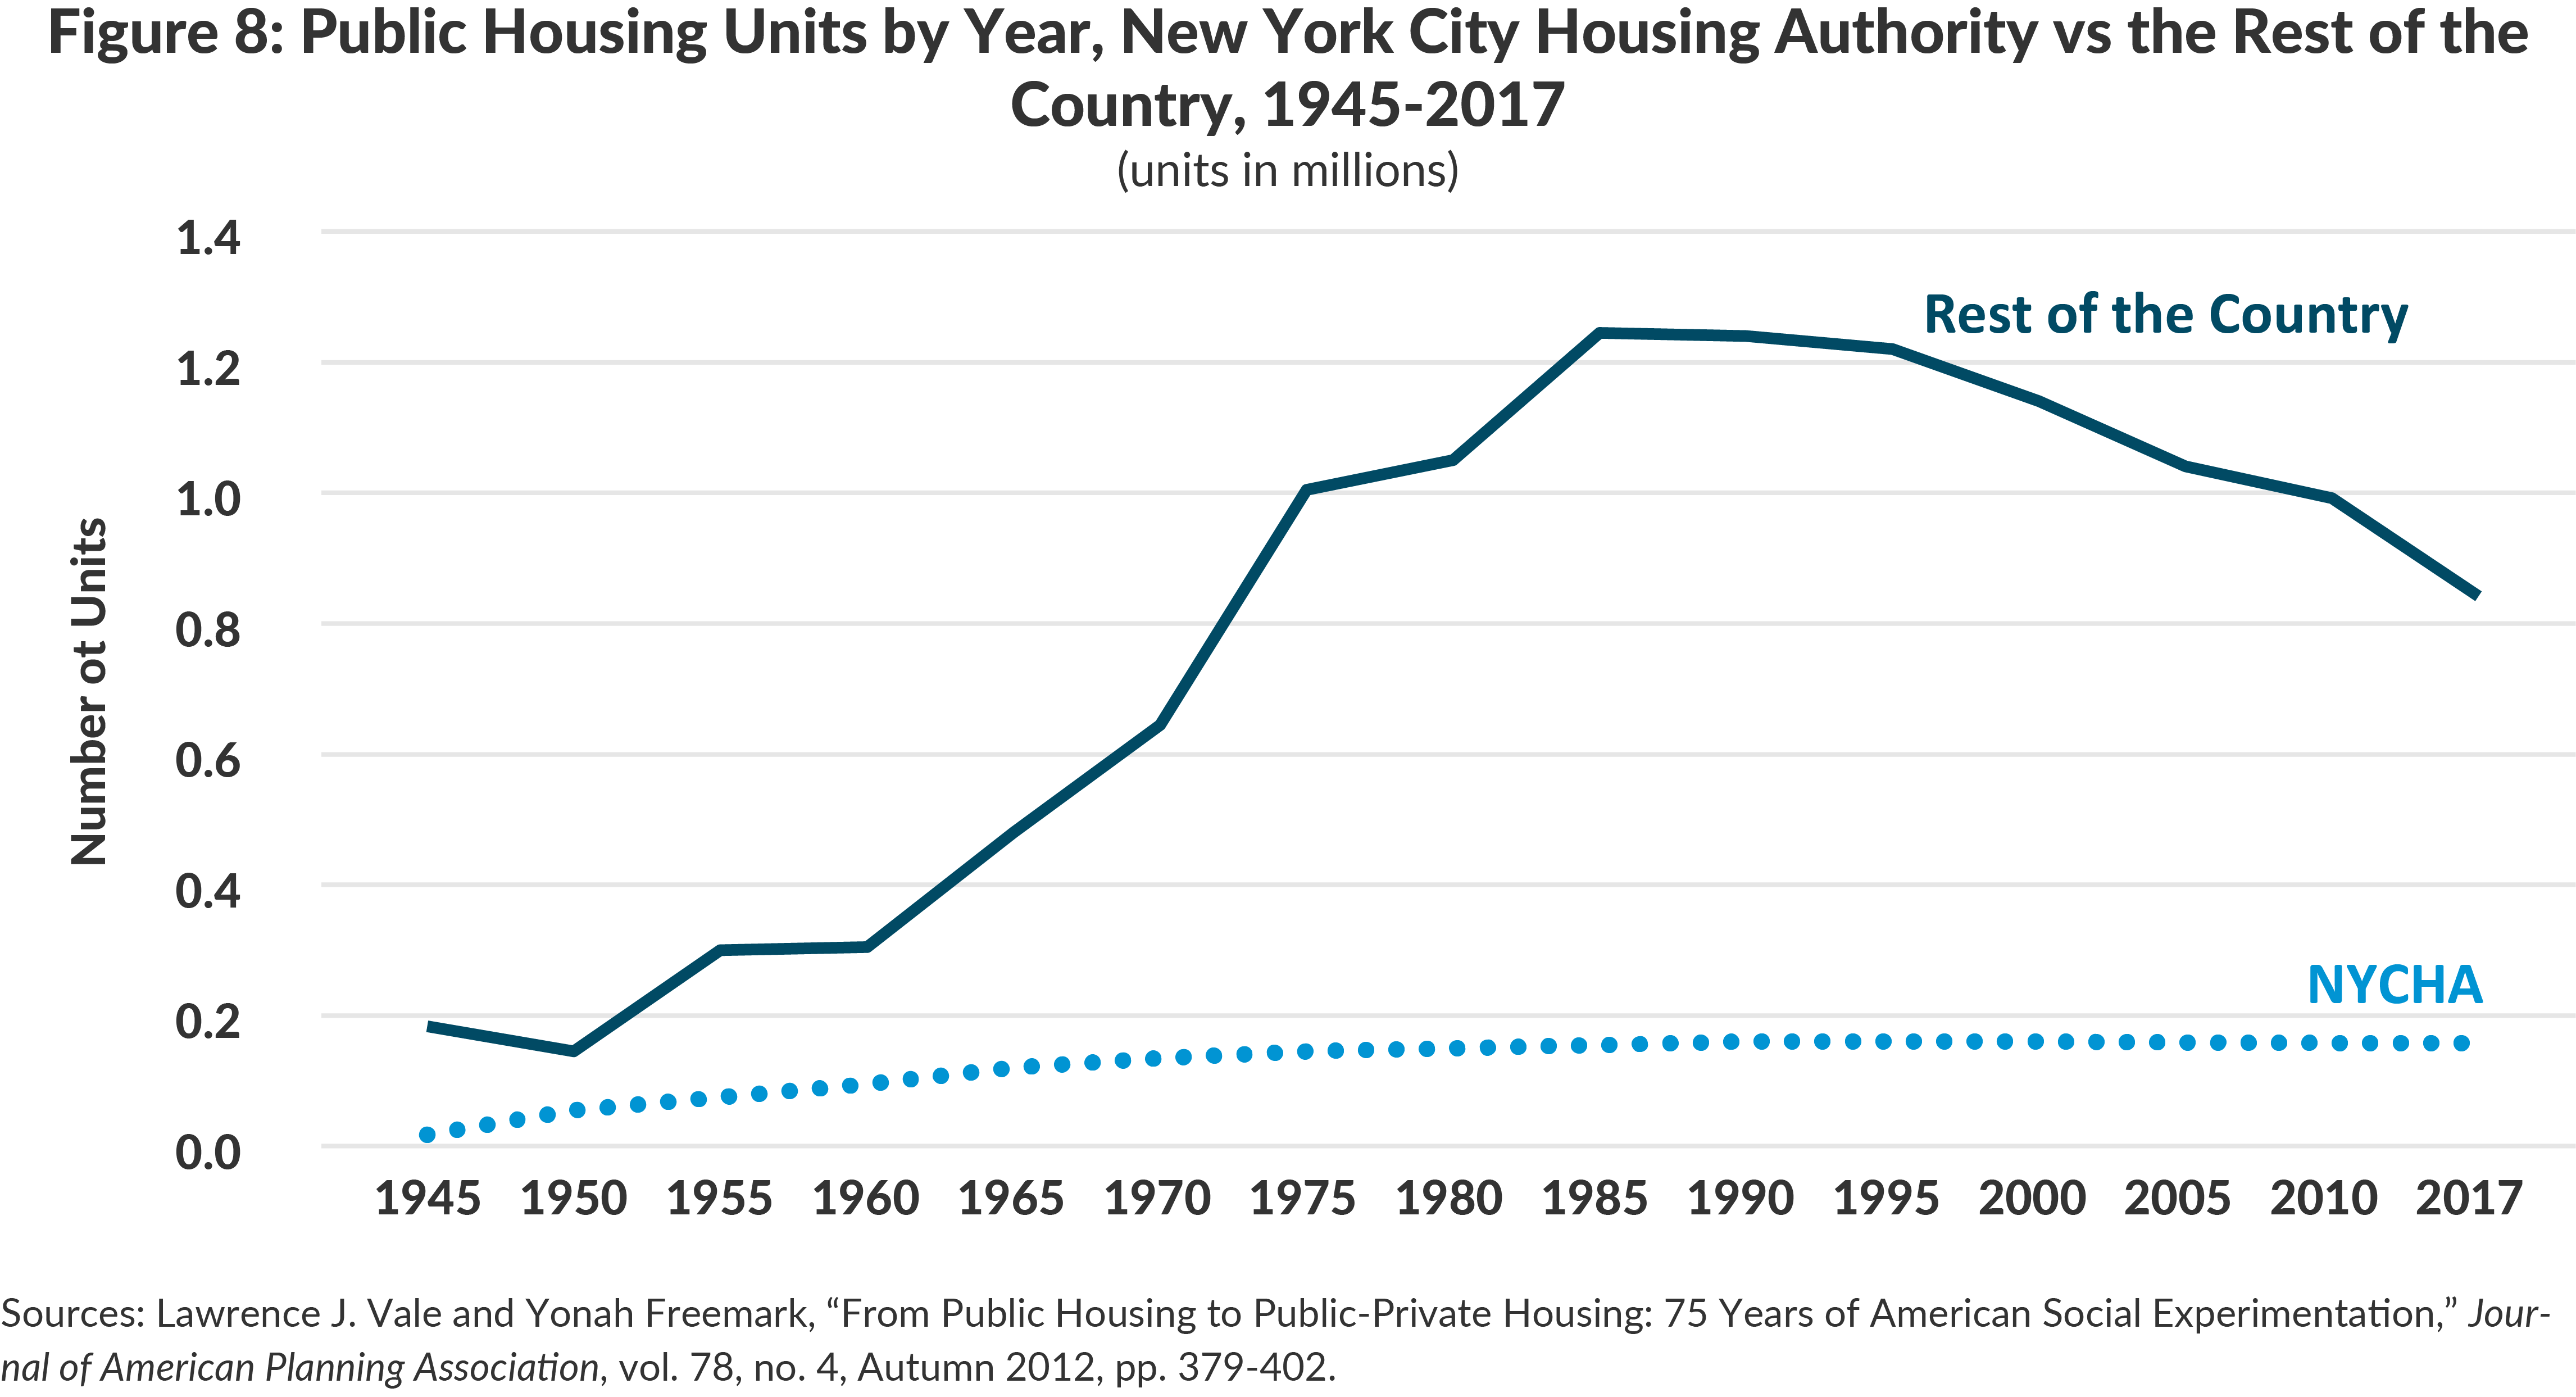 Figure 8: Public Housing Units by Year, New York City Housing Authority vs the Rest of theCountry, 1945-2017